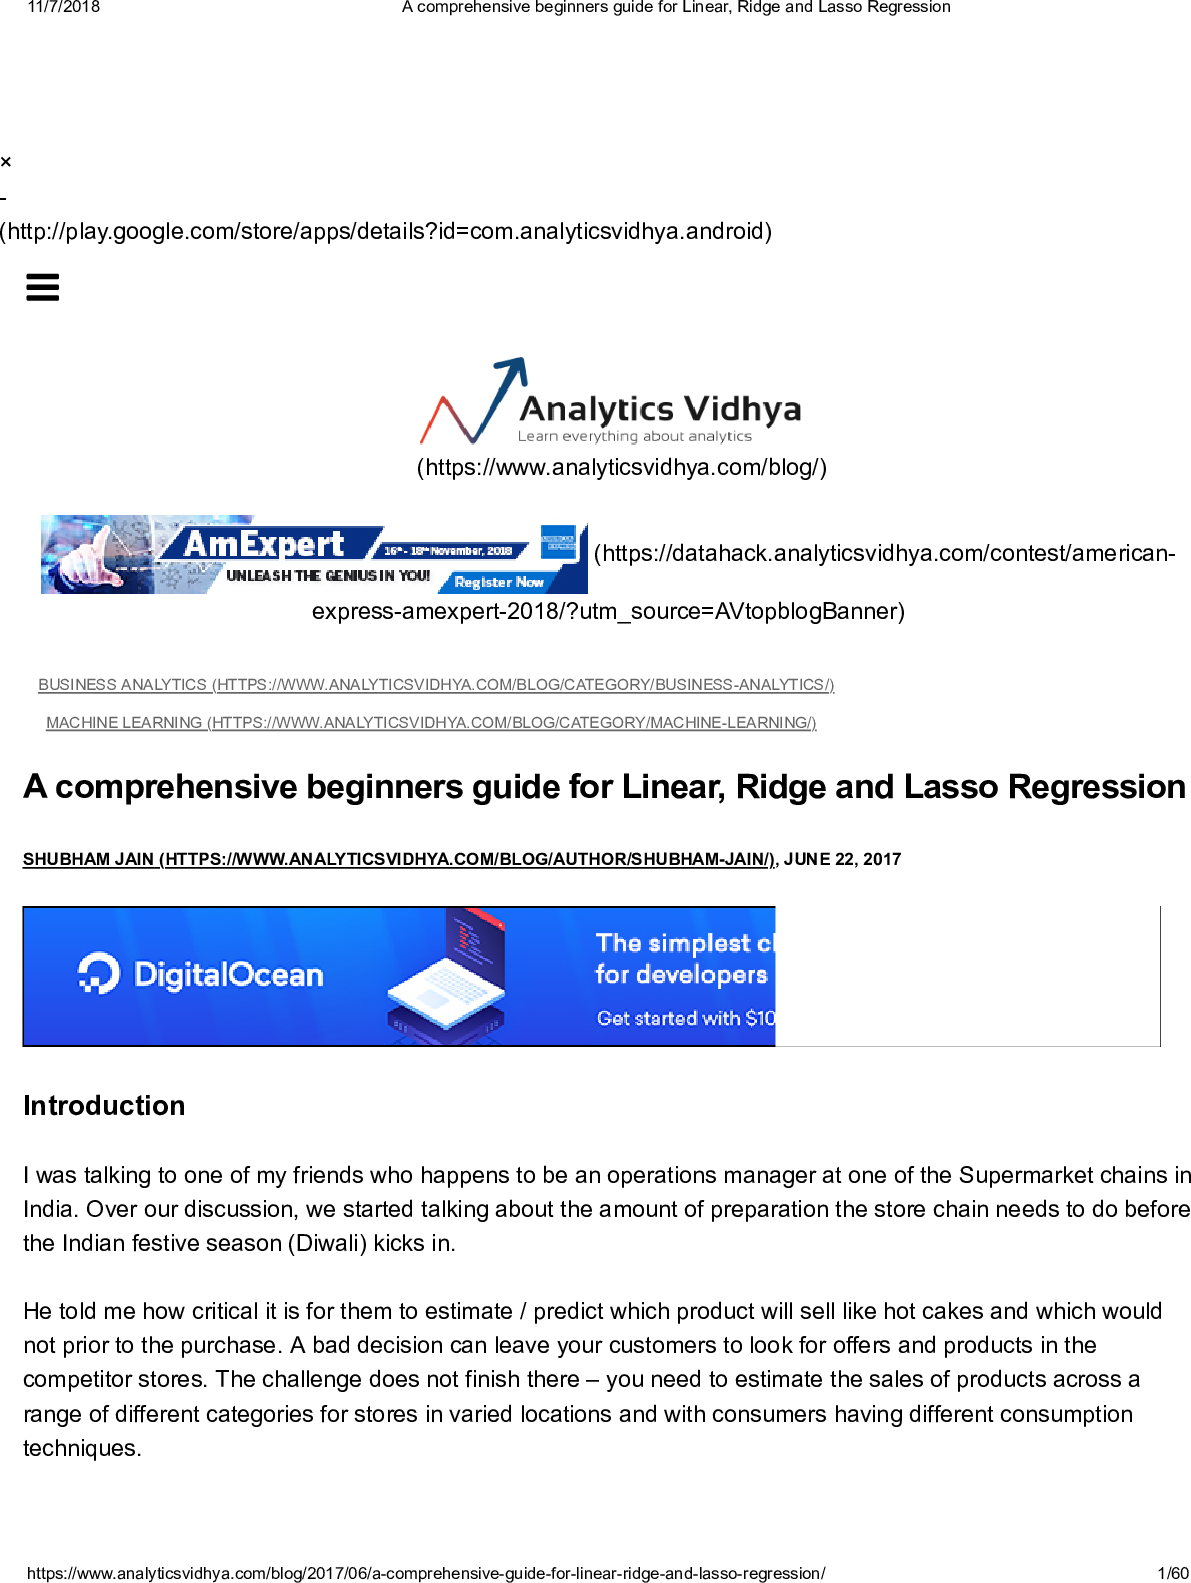 17 A Comprehensive Beginners Guide For Linear, Ridge And